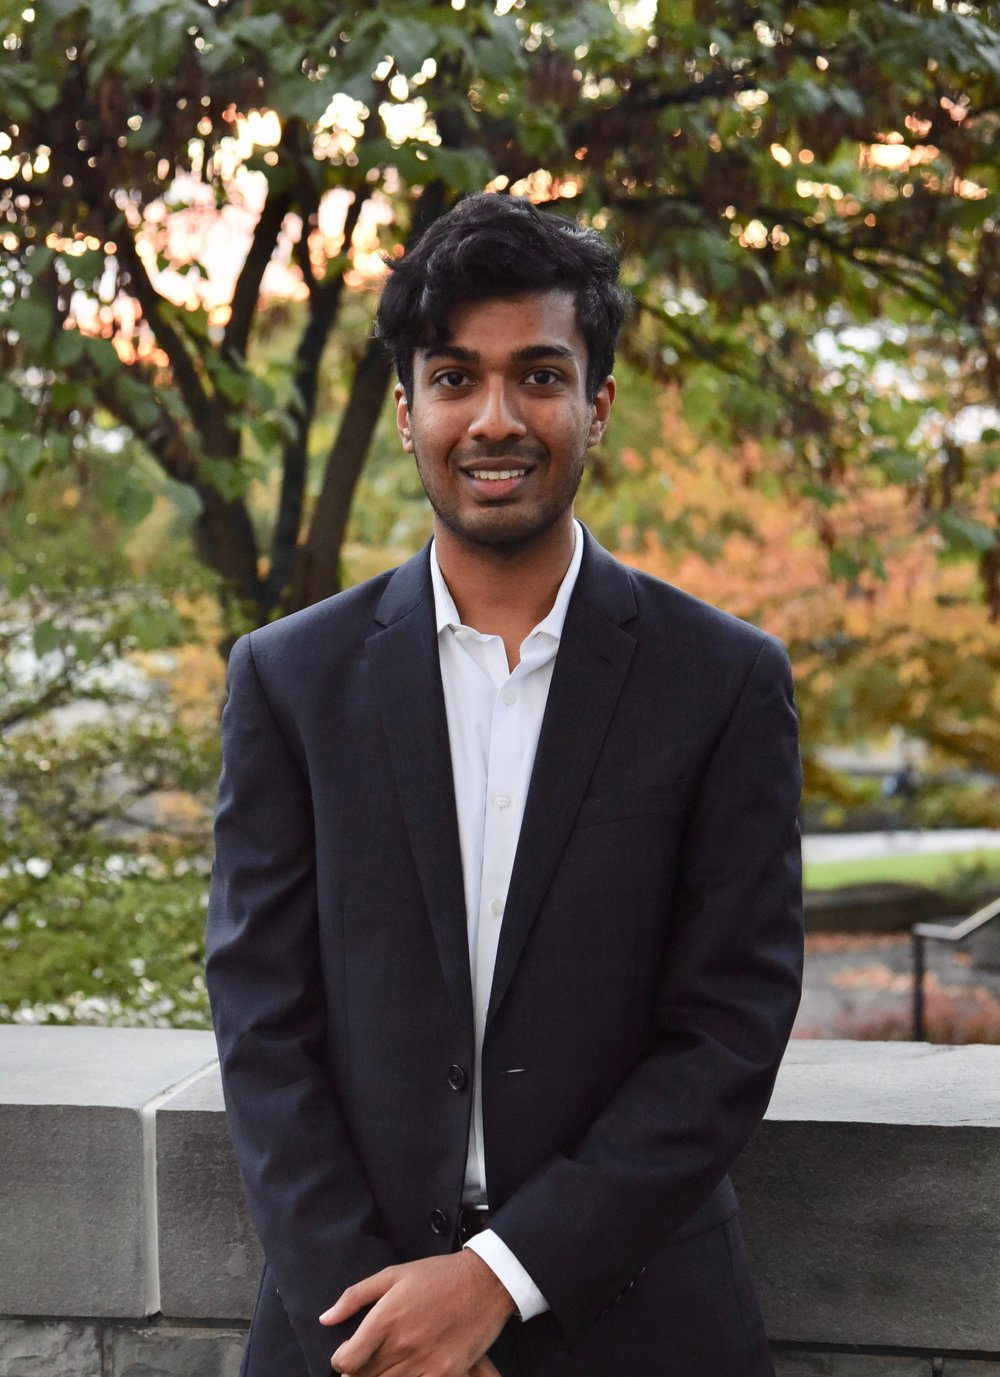 Rubin Thomas '21 - Major: Operations ResearchI joined CBR to learn more about the busines world and to further develop my research and critical thinking skills